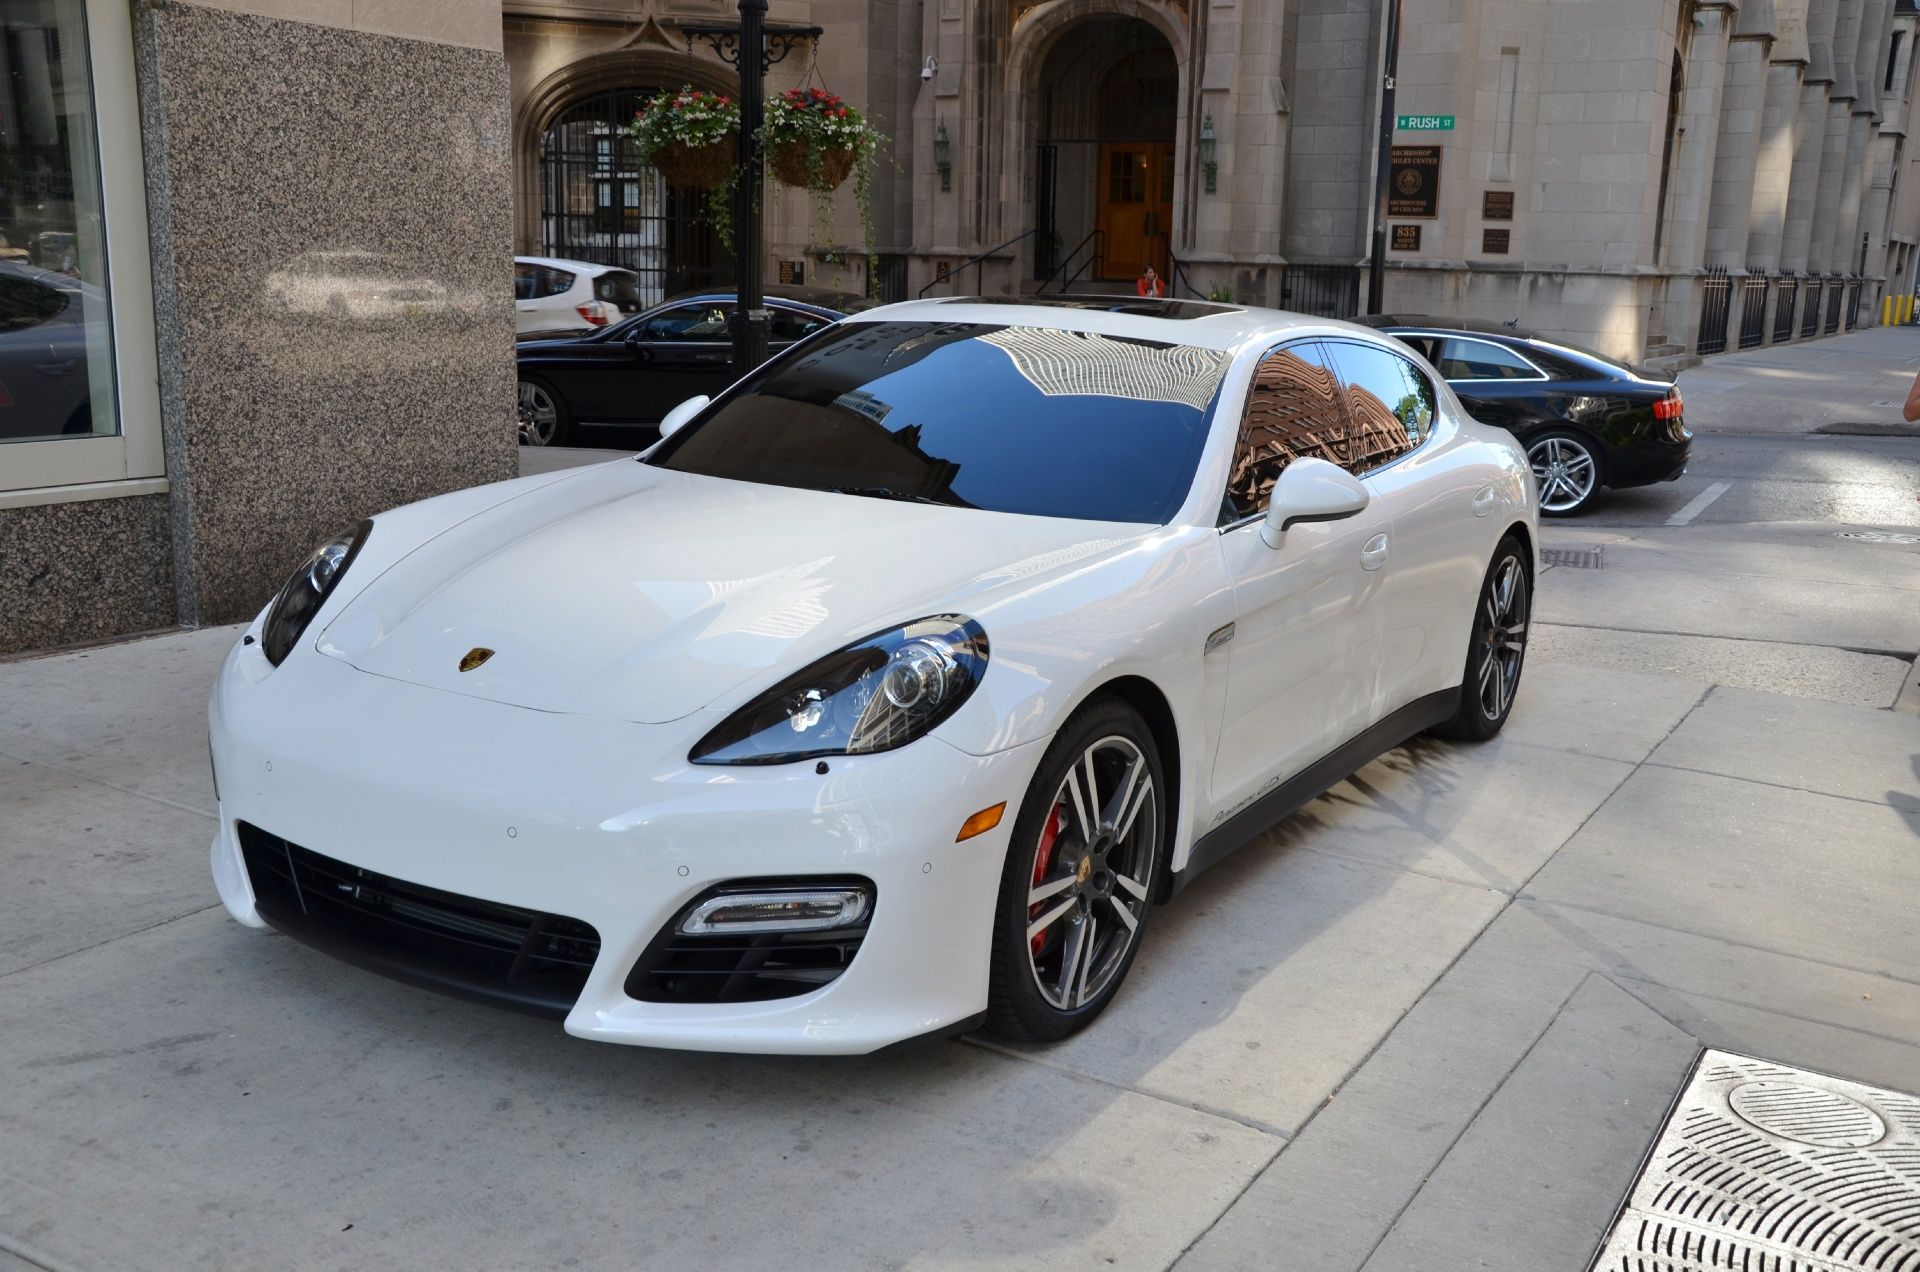 Porsche Panamera Turbo The Porsche Panamera Is One Of